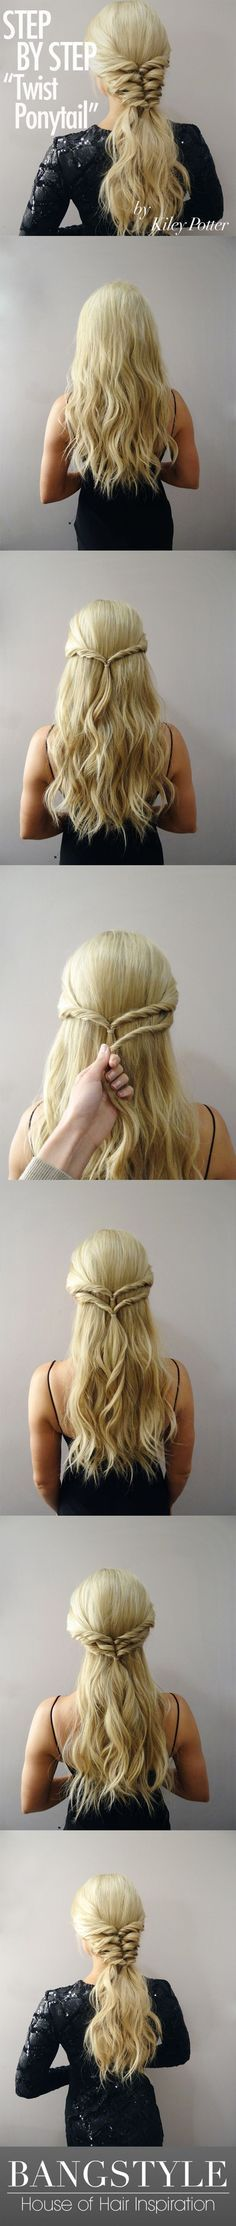 Can't decide between a pony tail and a braid? Bring both together in perfection …